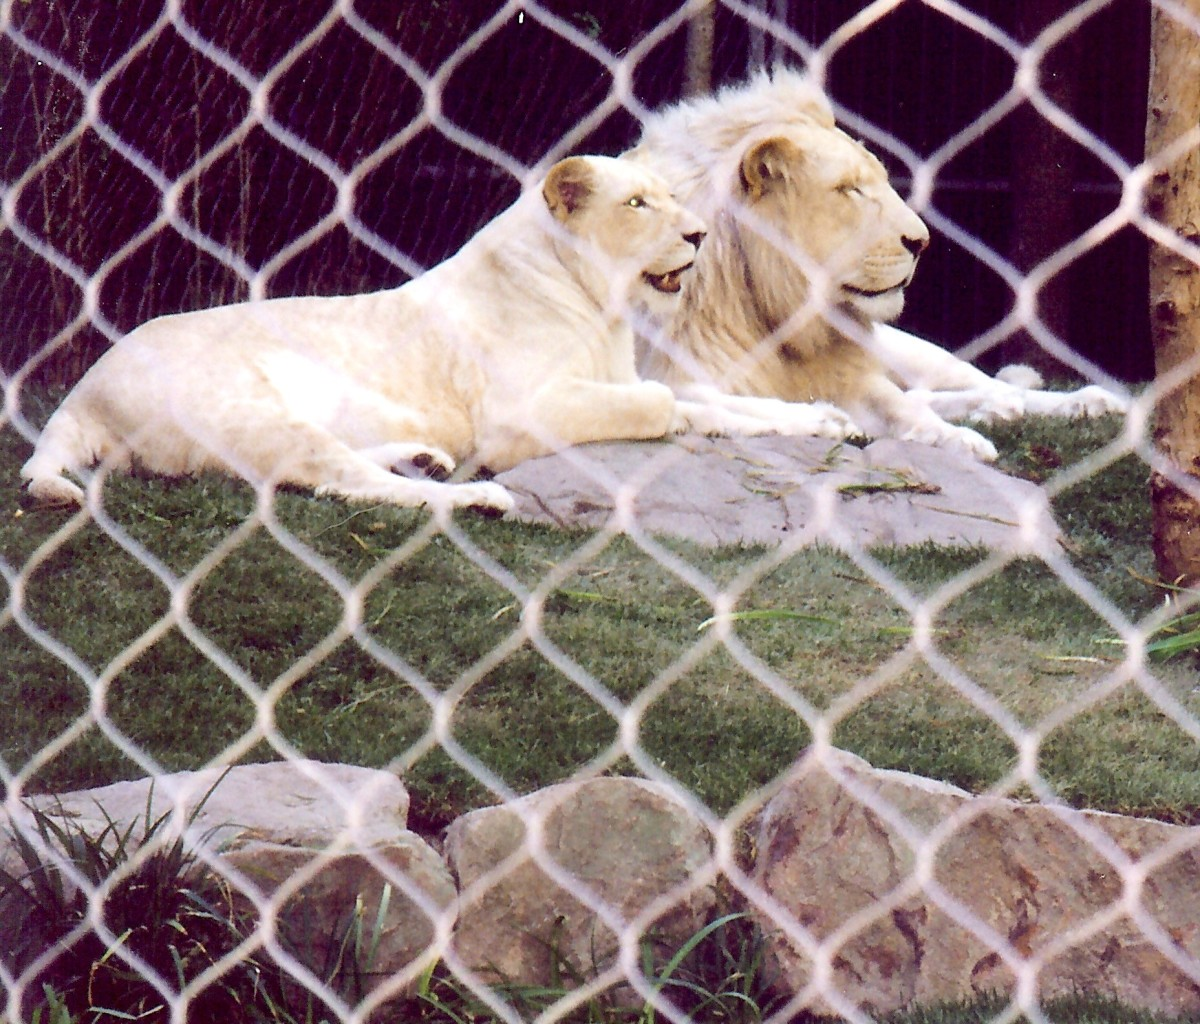 White Lions of Timbavati at Mirage Hotel